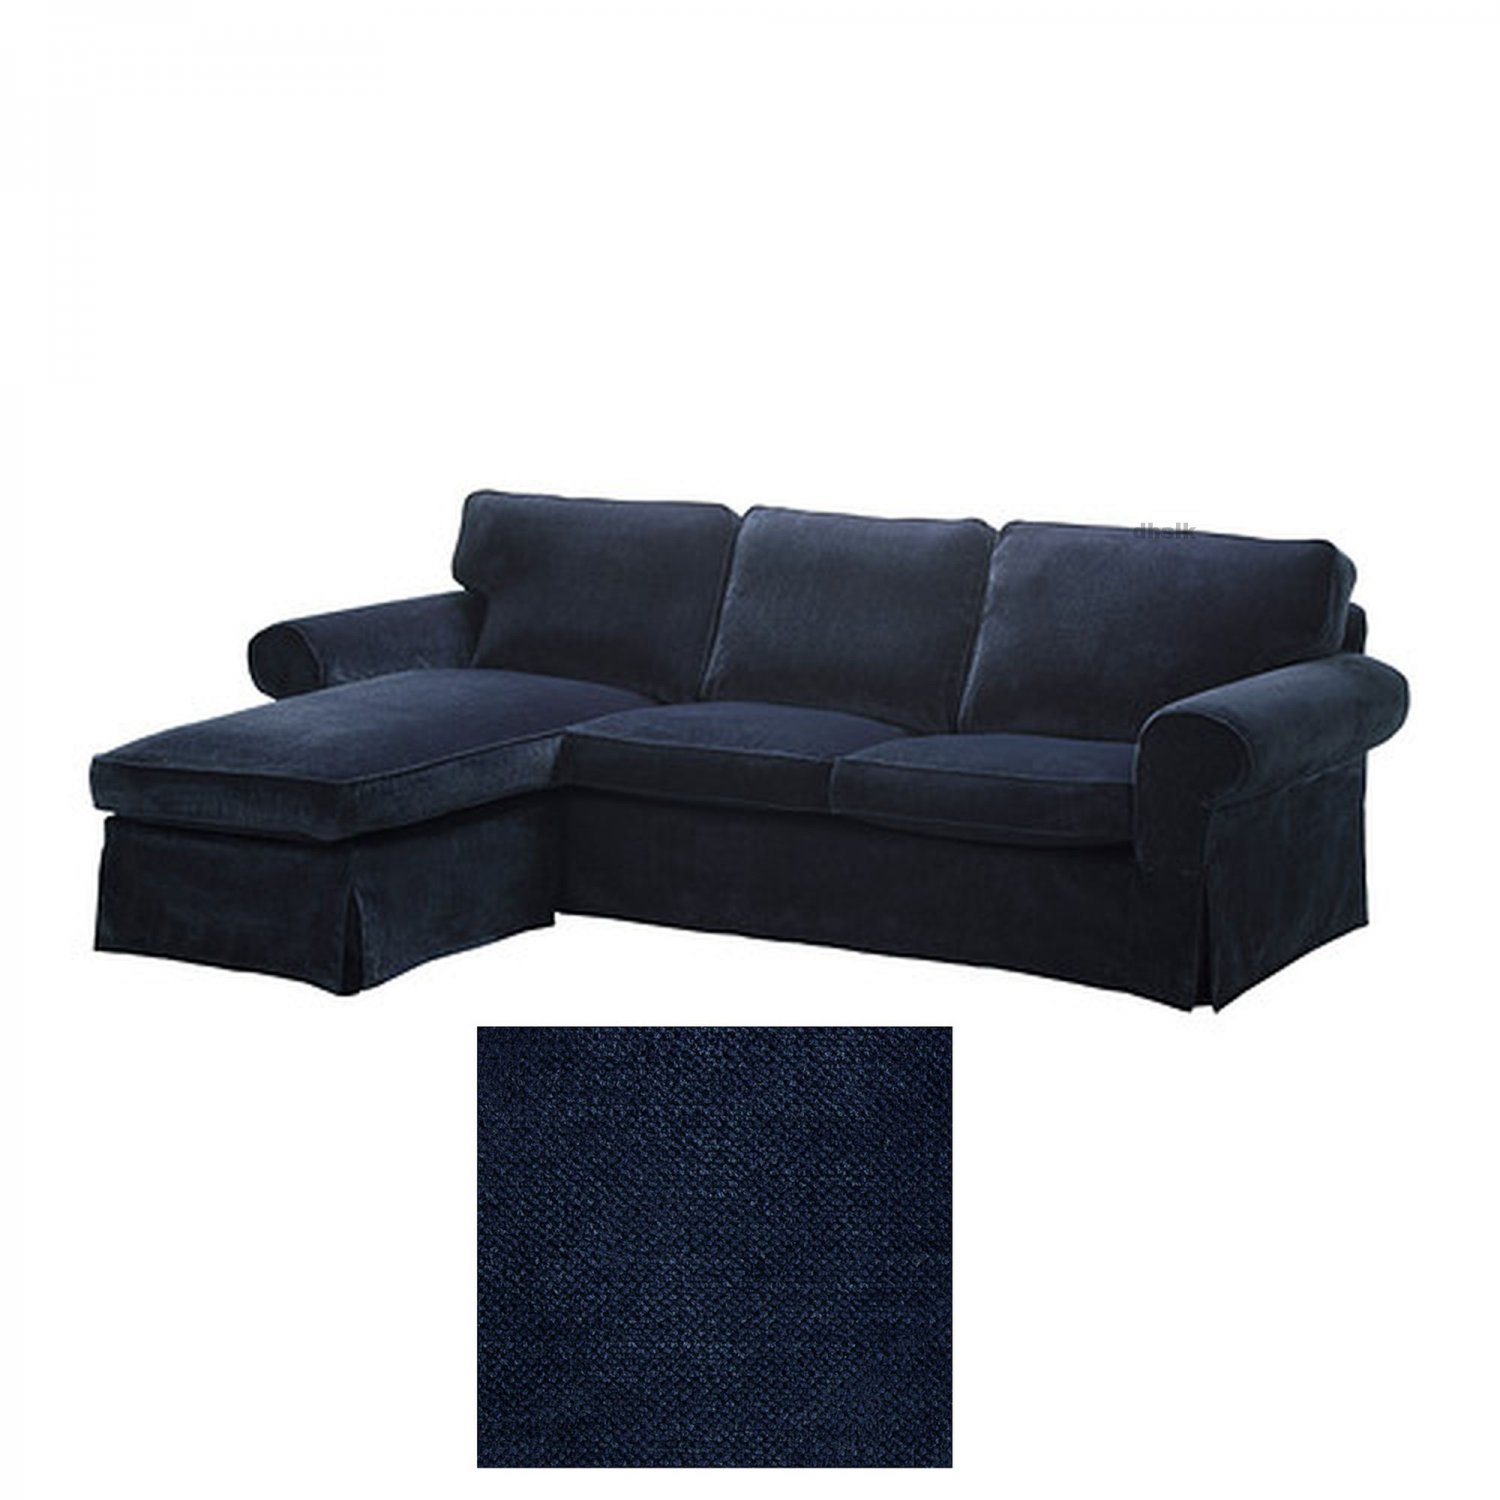 Ikea ektorp 2 seat loveseat sofa with chaise cover slipcover vellinge dark blue Blue loveseat slipcover